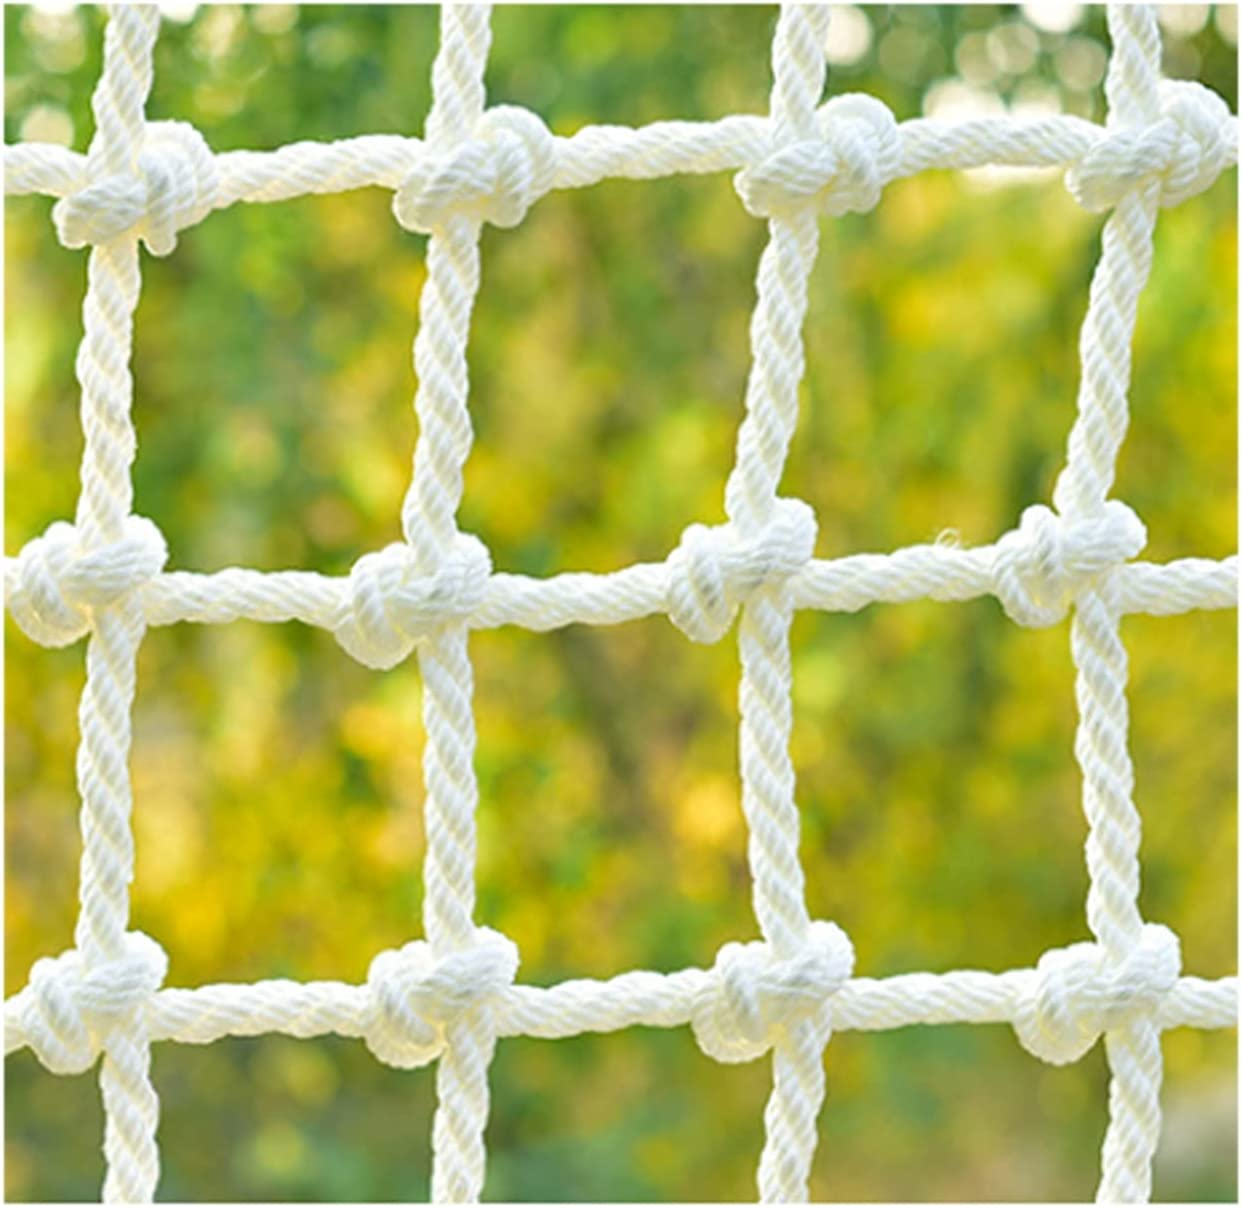 Climbing net Garden Game with Hand security Safety Selling and selling Rope